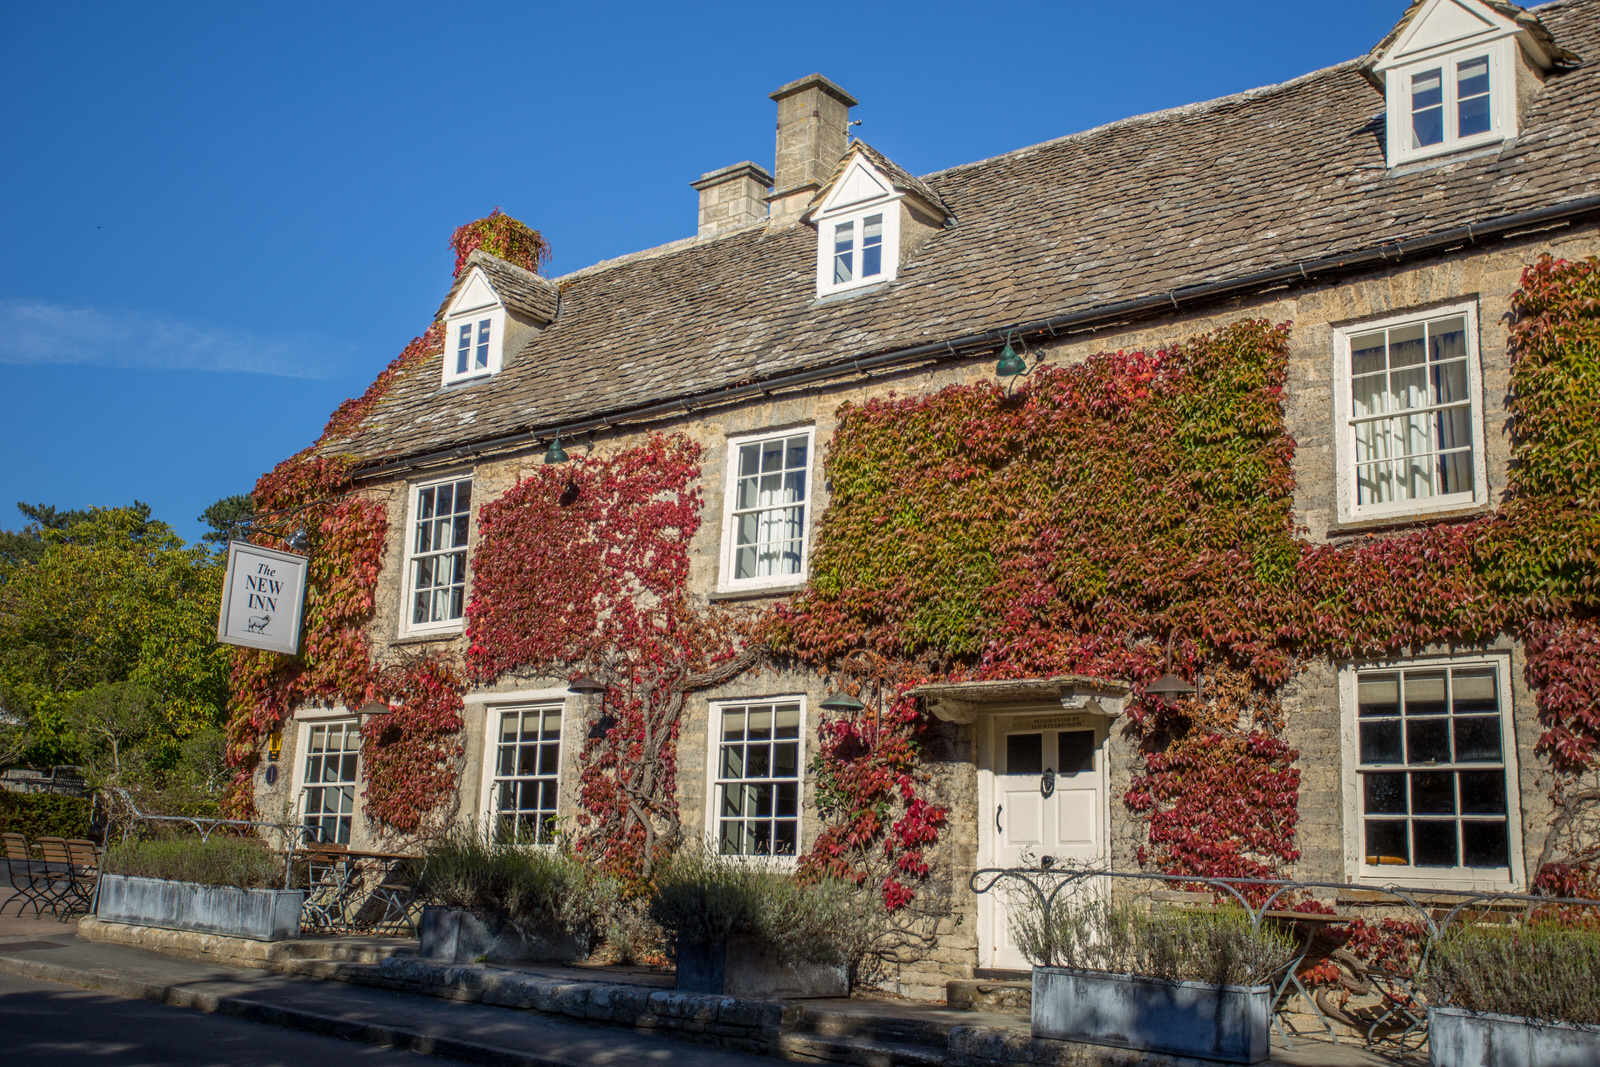 The New Inn - 15 ensuite bedrooms located five miles away from Stone Barn.www.thenewinncoln.co.uk